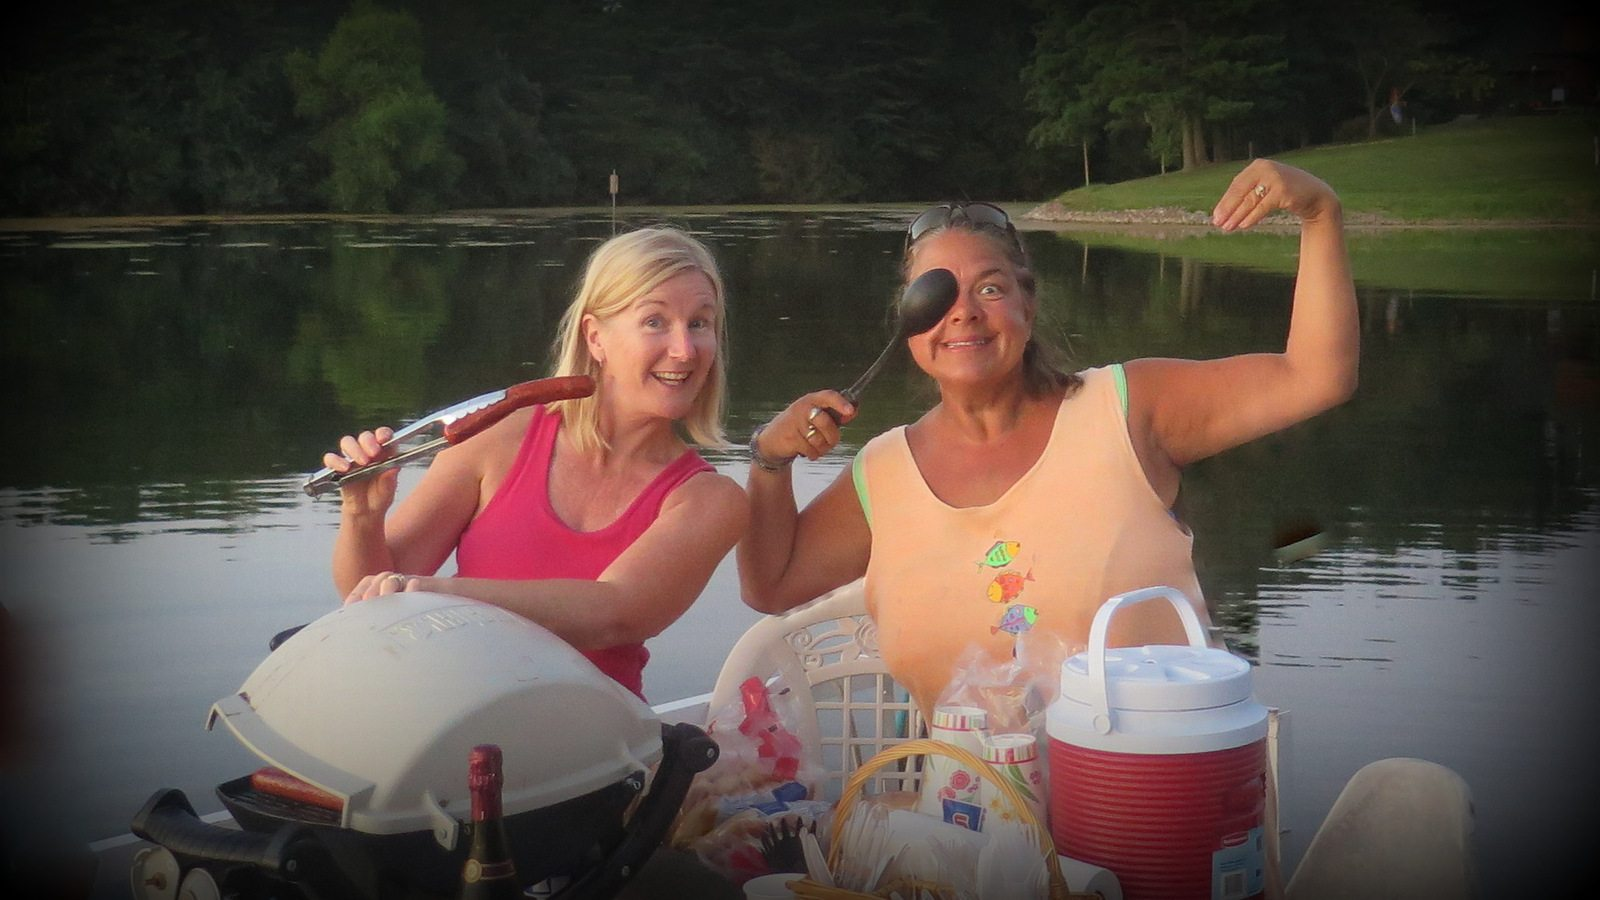 Image: Two Joyful Ones cook on a boat for everyone